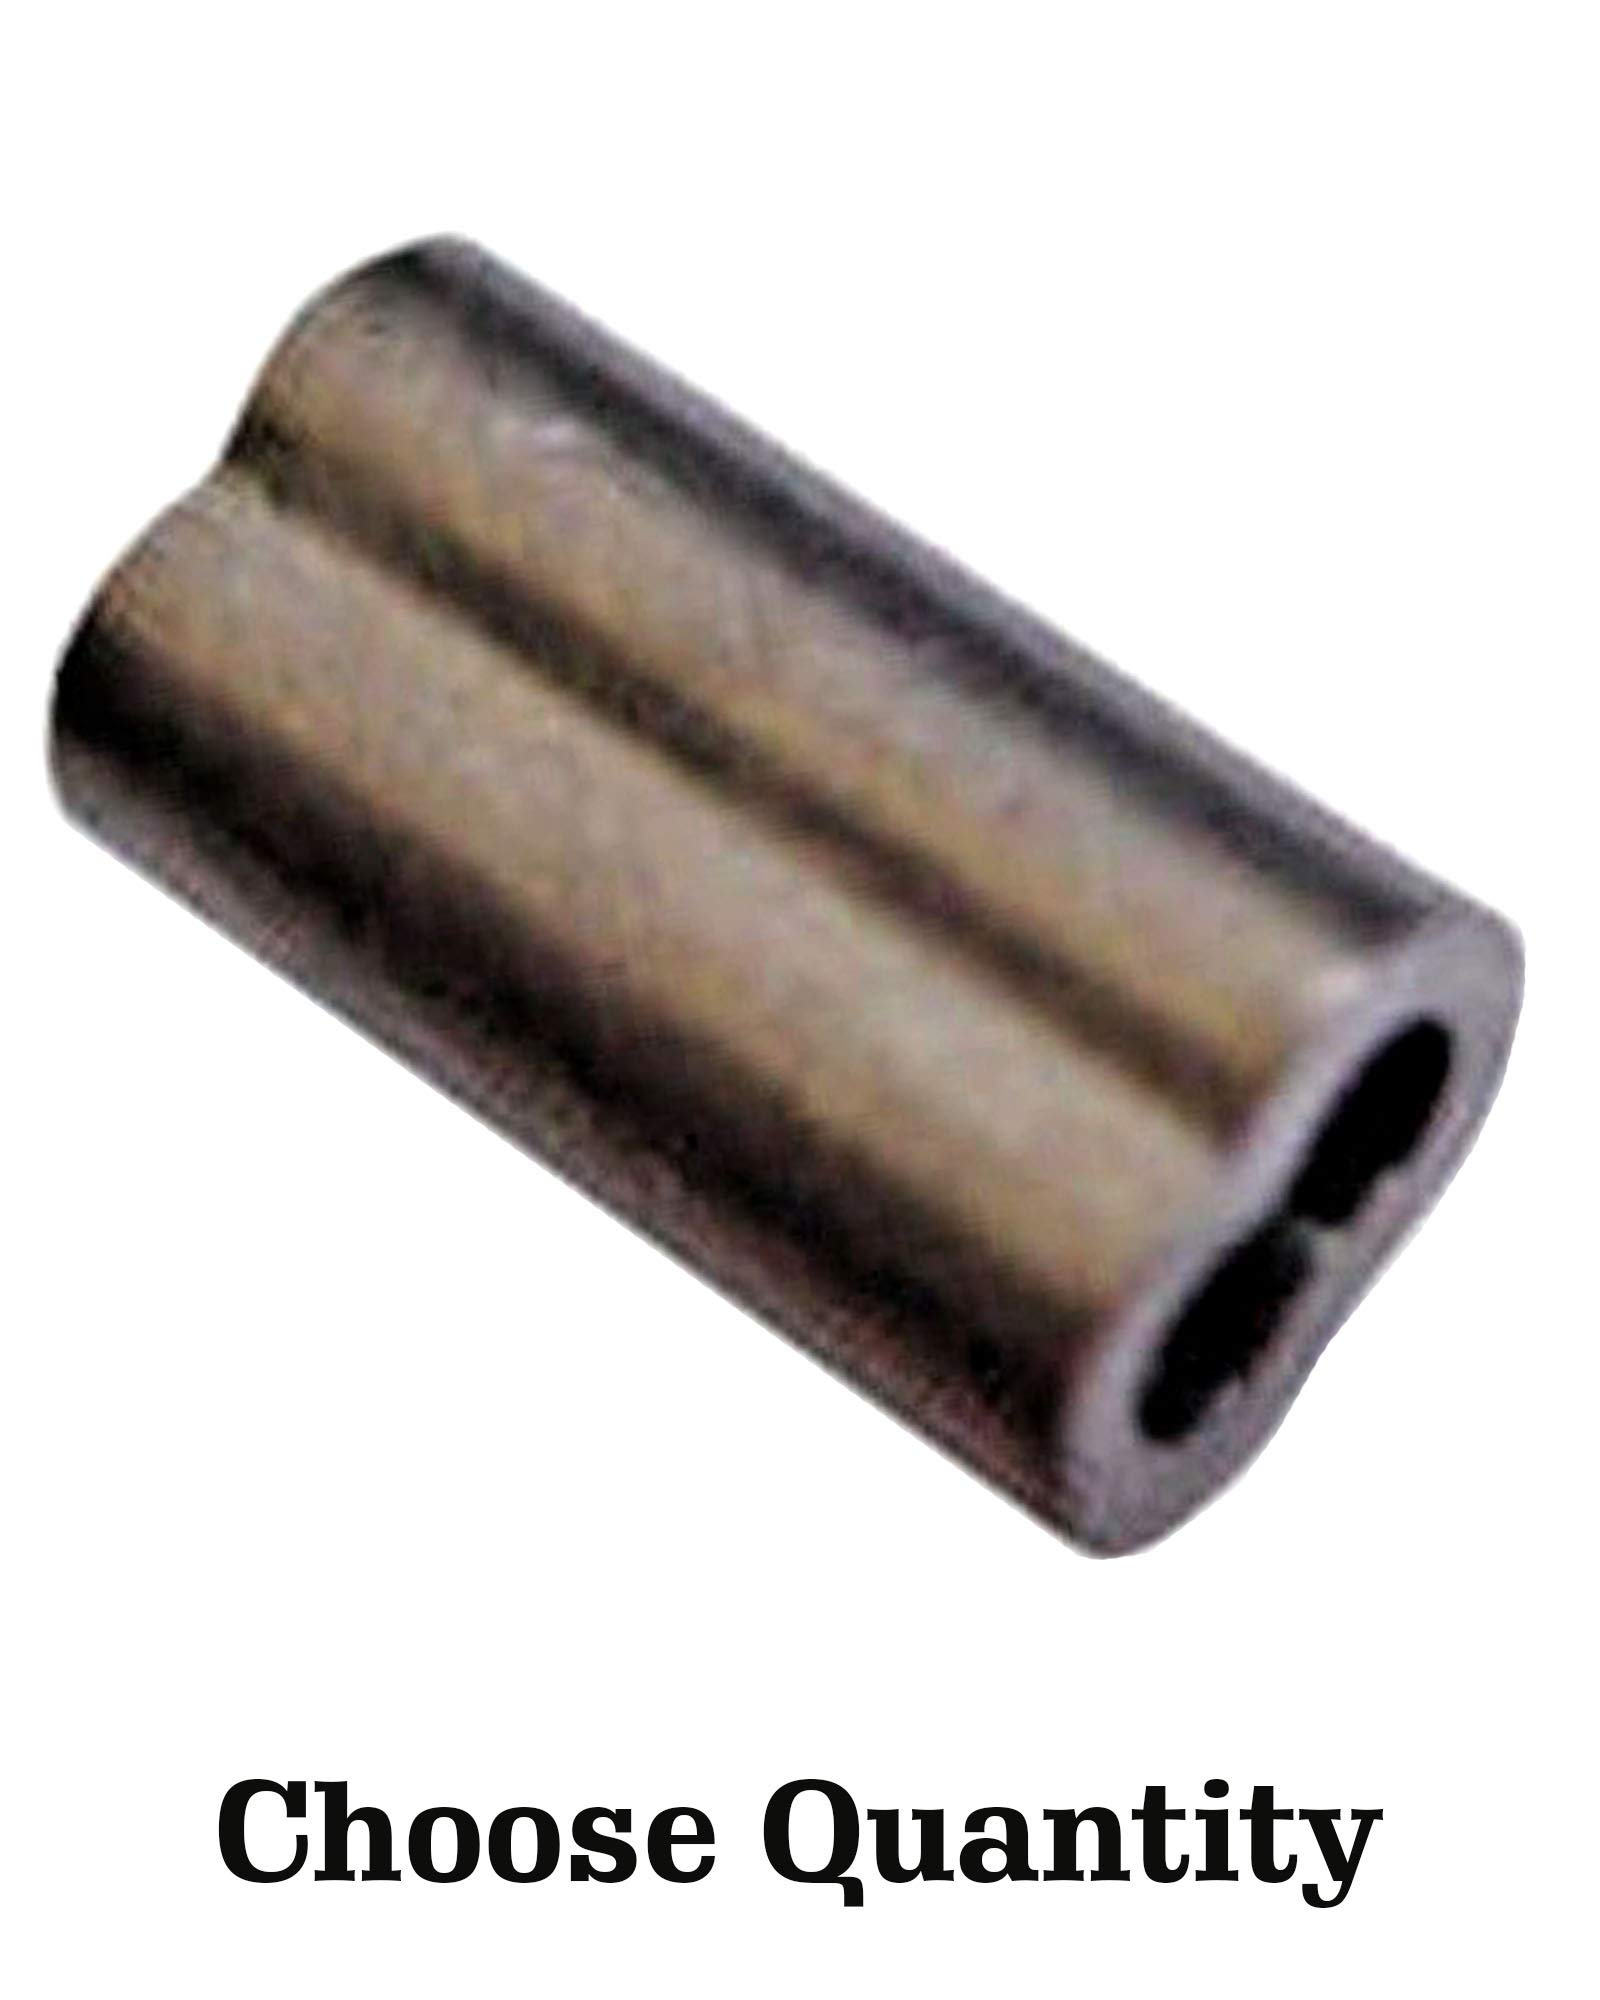 Nickel Plated Copper Swage Sleeves - Crimping Loop Sleeve for 3/64'' Diameter Wire Rope and Cable - Cable Swage Sleeves - Double Barrel Crimp Sleeves - Nickel Plated Copper Sleeves for Wire (1000)